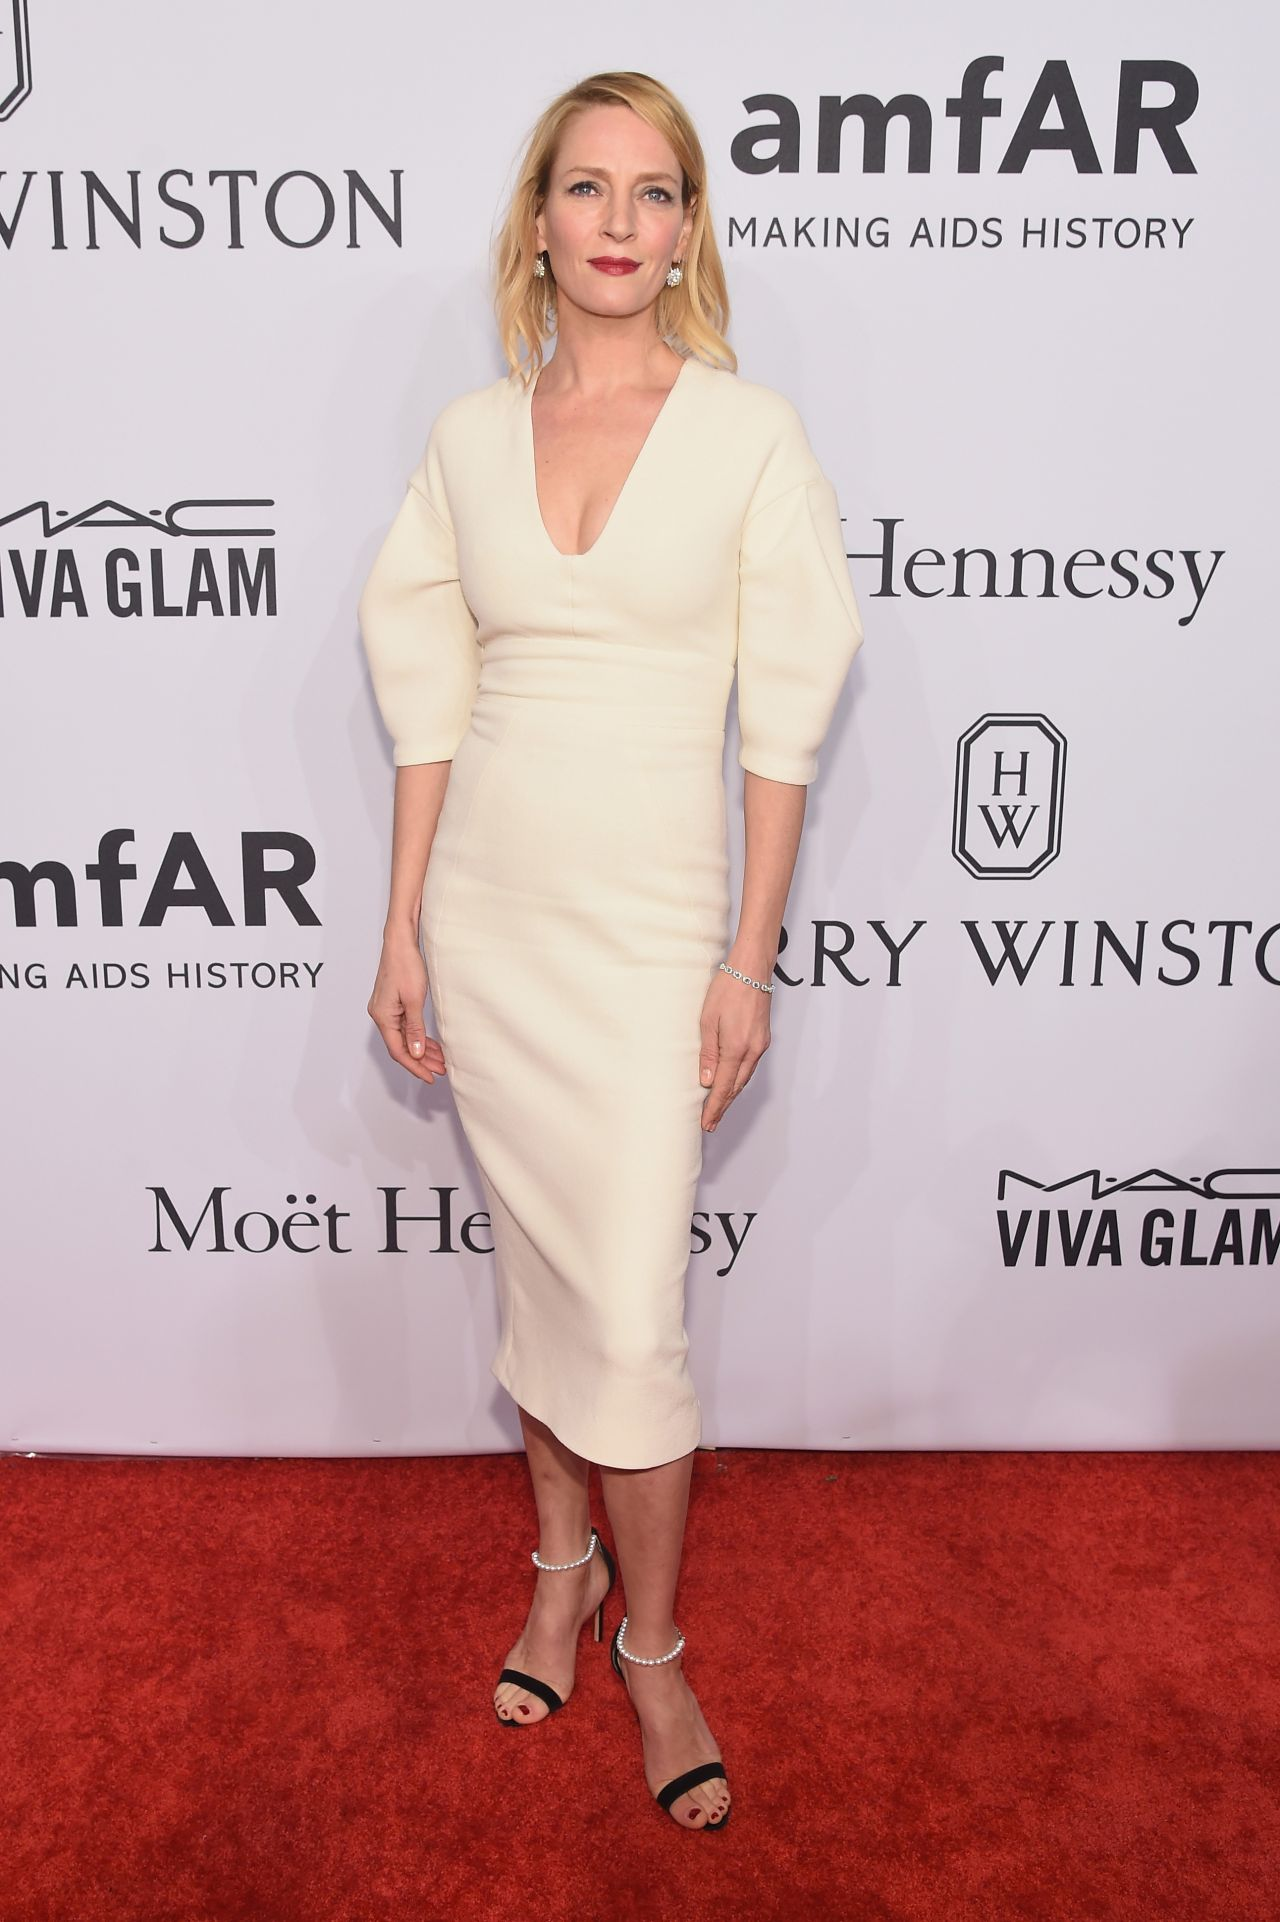 uma-thurman-2016-amfar-new-york-gala-in-new-york-city-ny-3